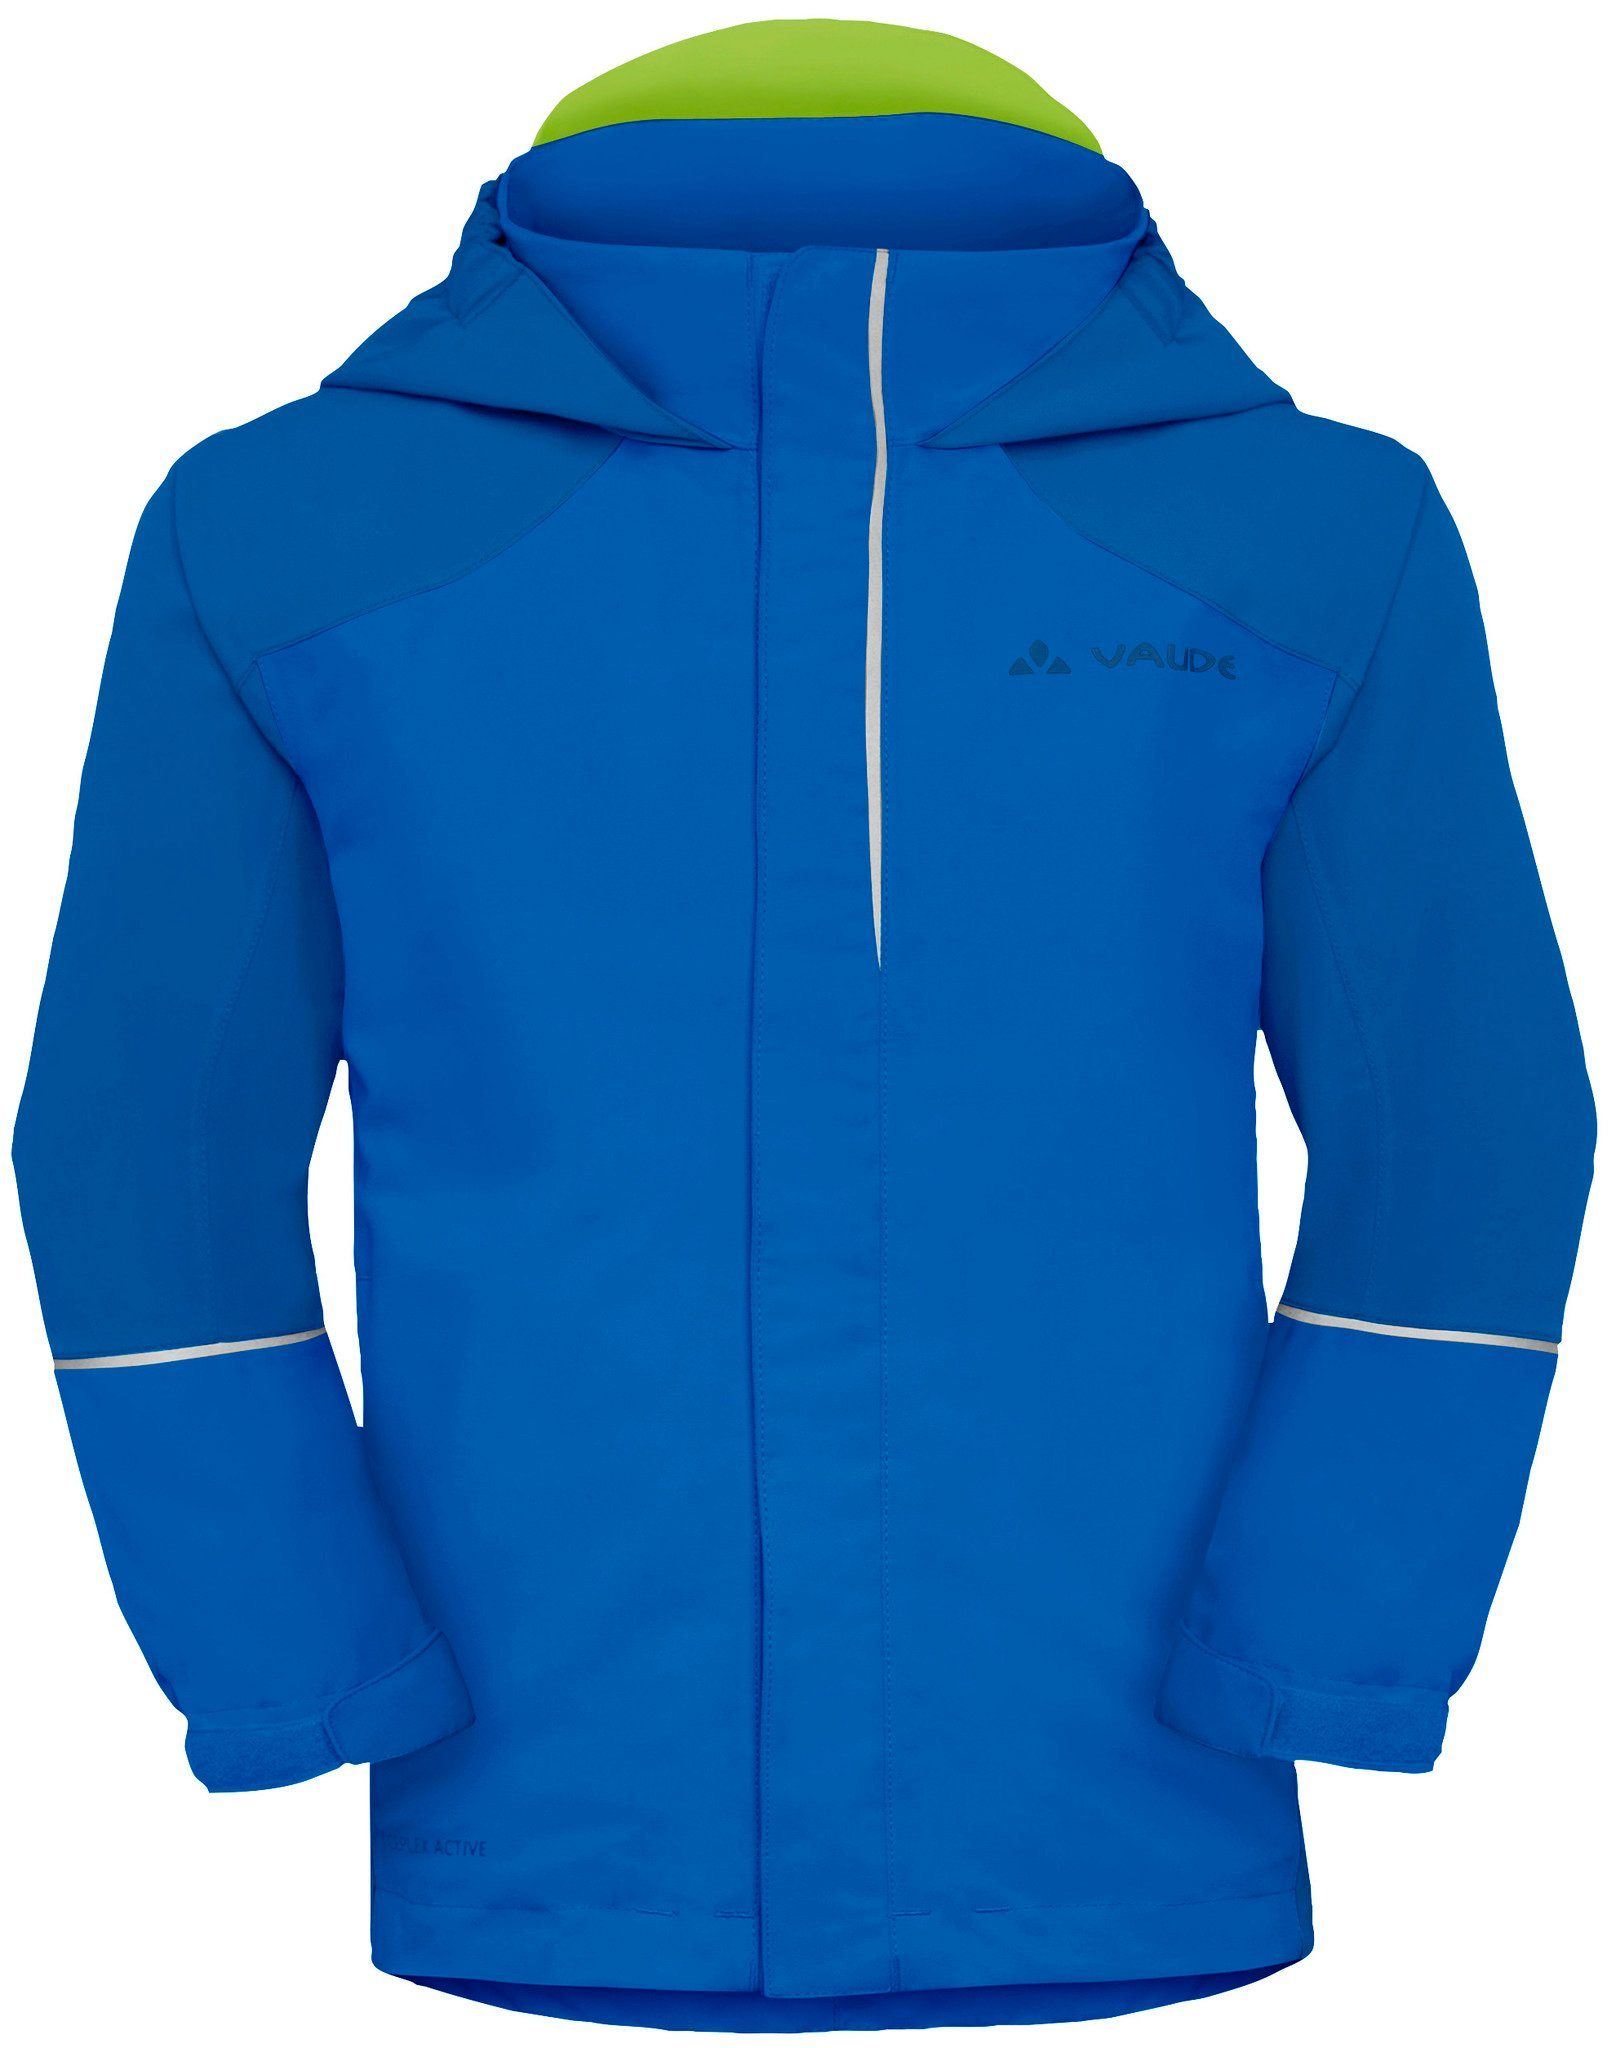 VAUDE Outdoorjacke »Racoon IV Jacket Kids«